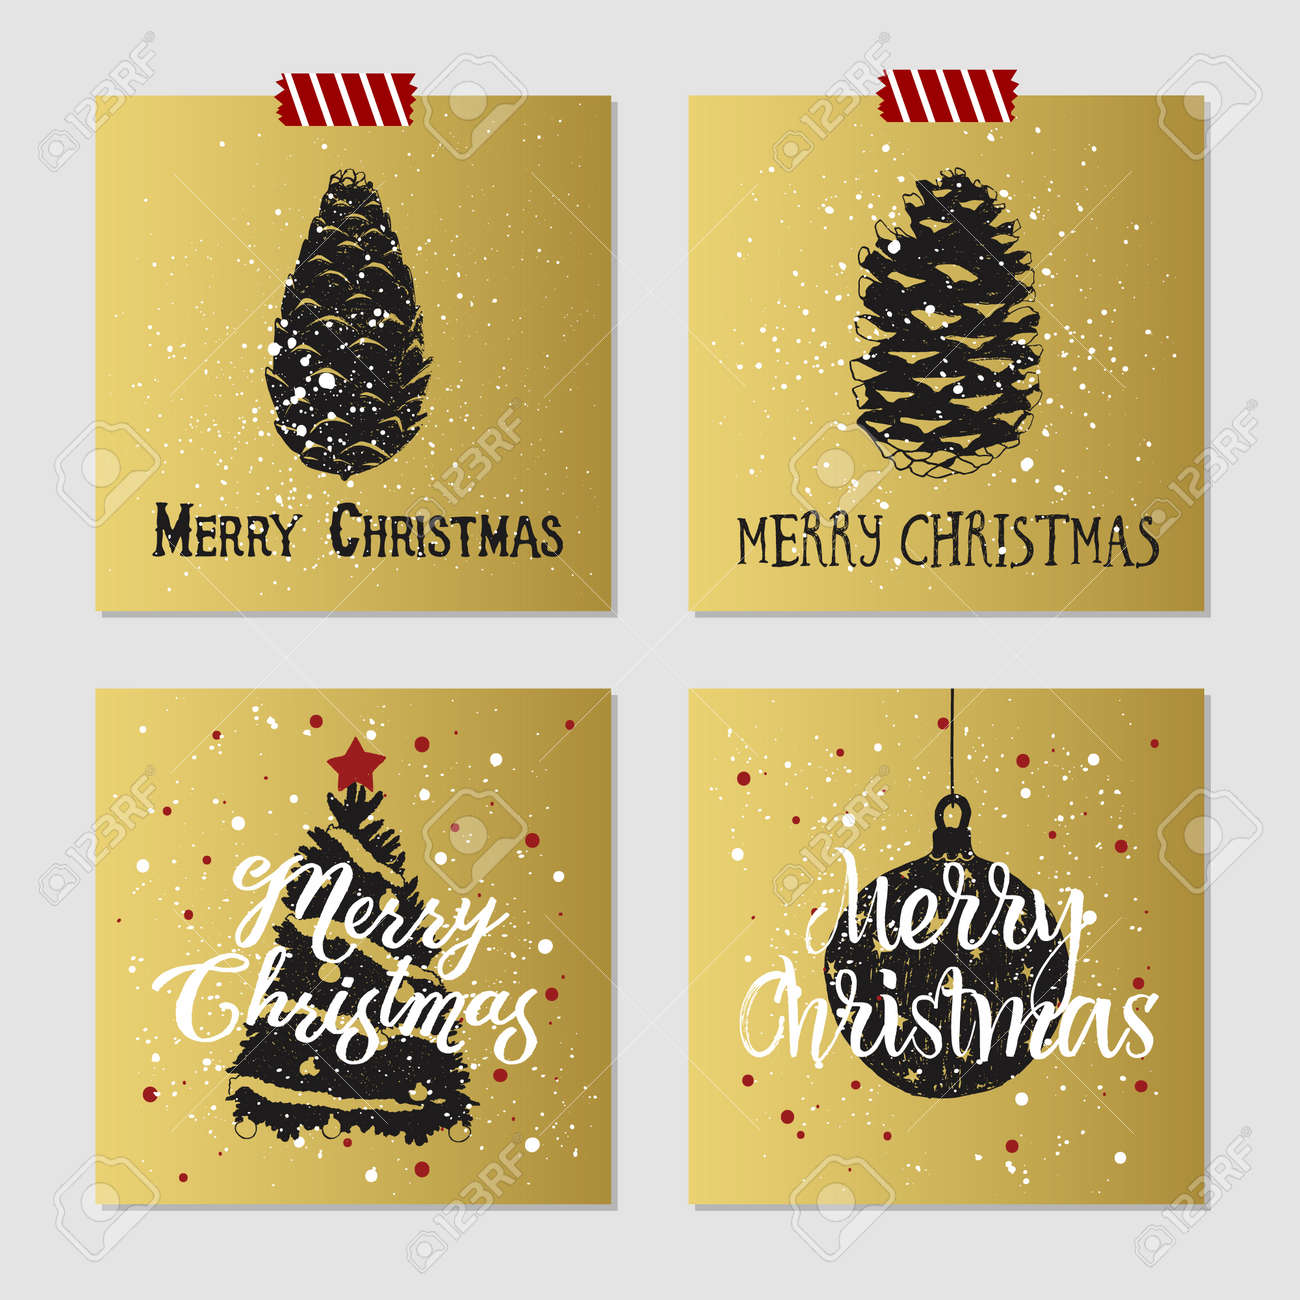 Hand Drawn Christmas Cards Set With Textured Pine Cones, Christmas ...